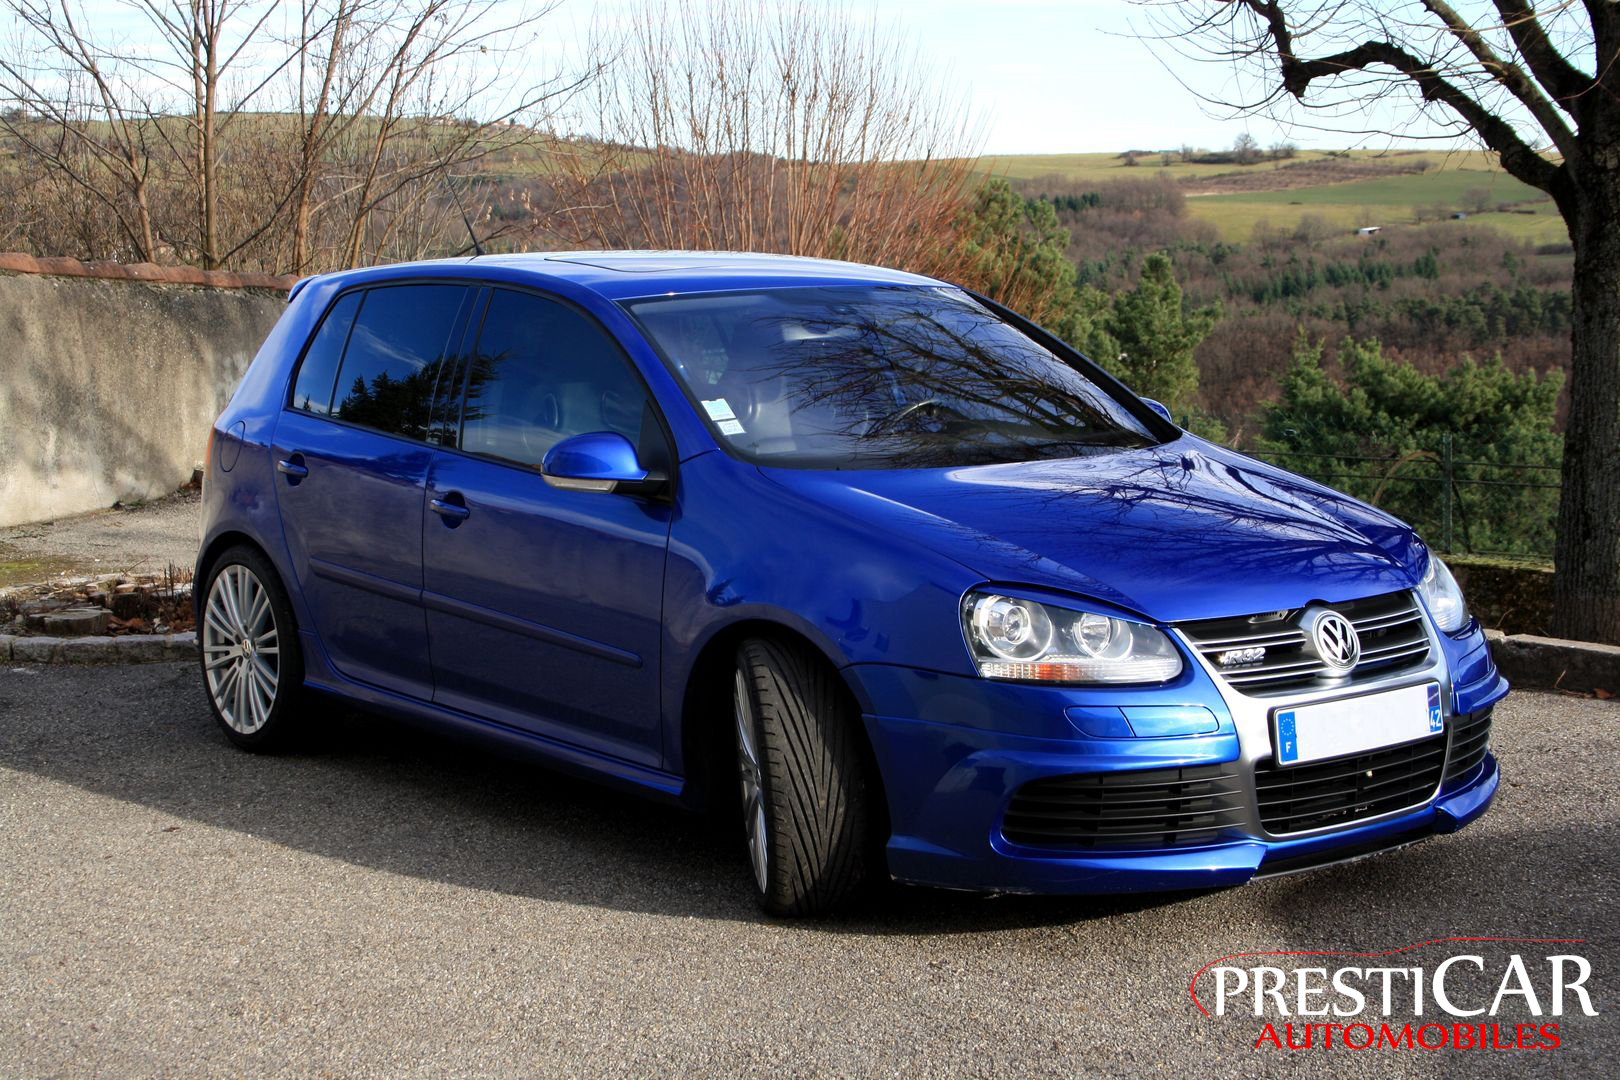 Vw golf v r32 3 2 v6 dsg 250 ch presticar automobiles for Golf 5 interieur 2008